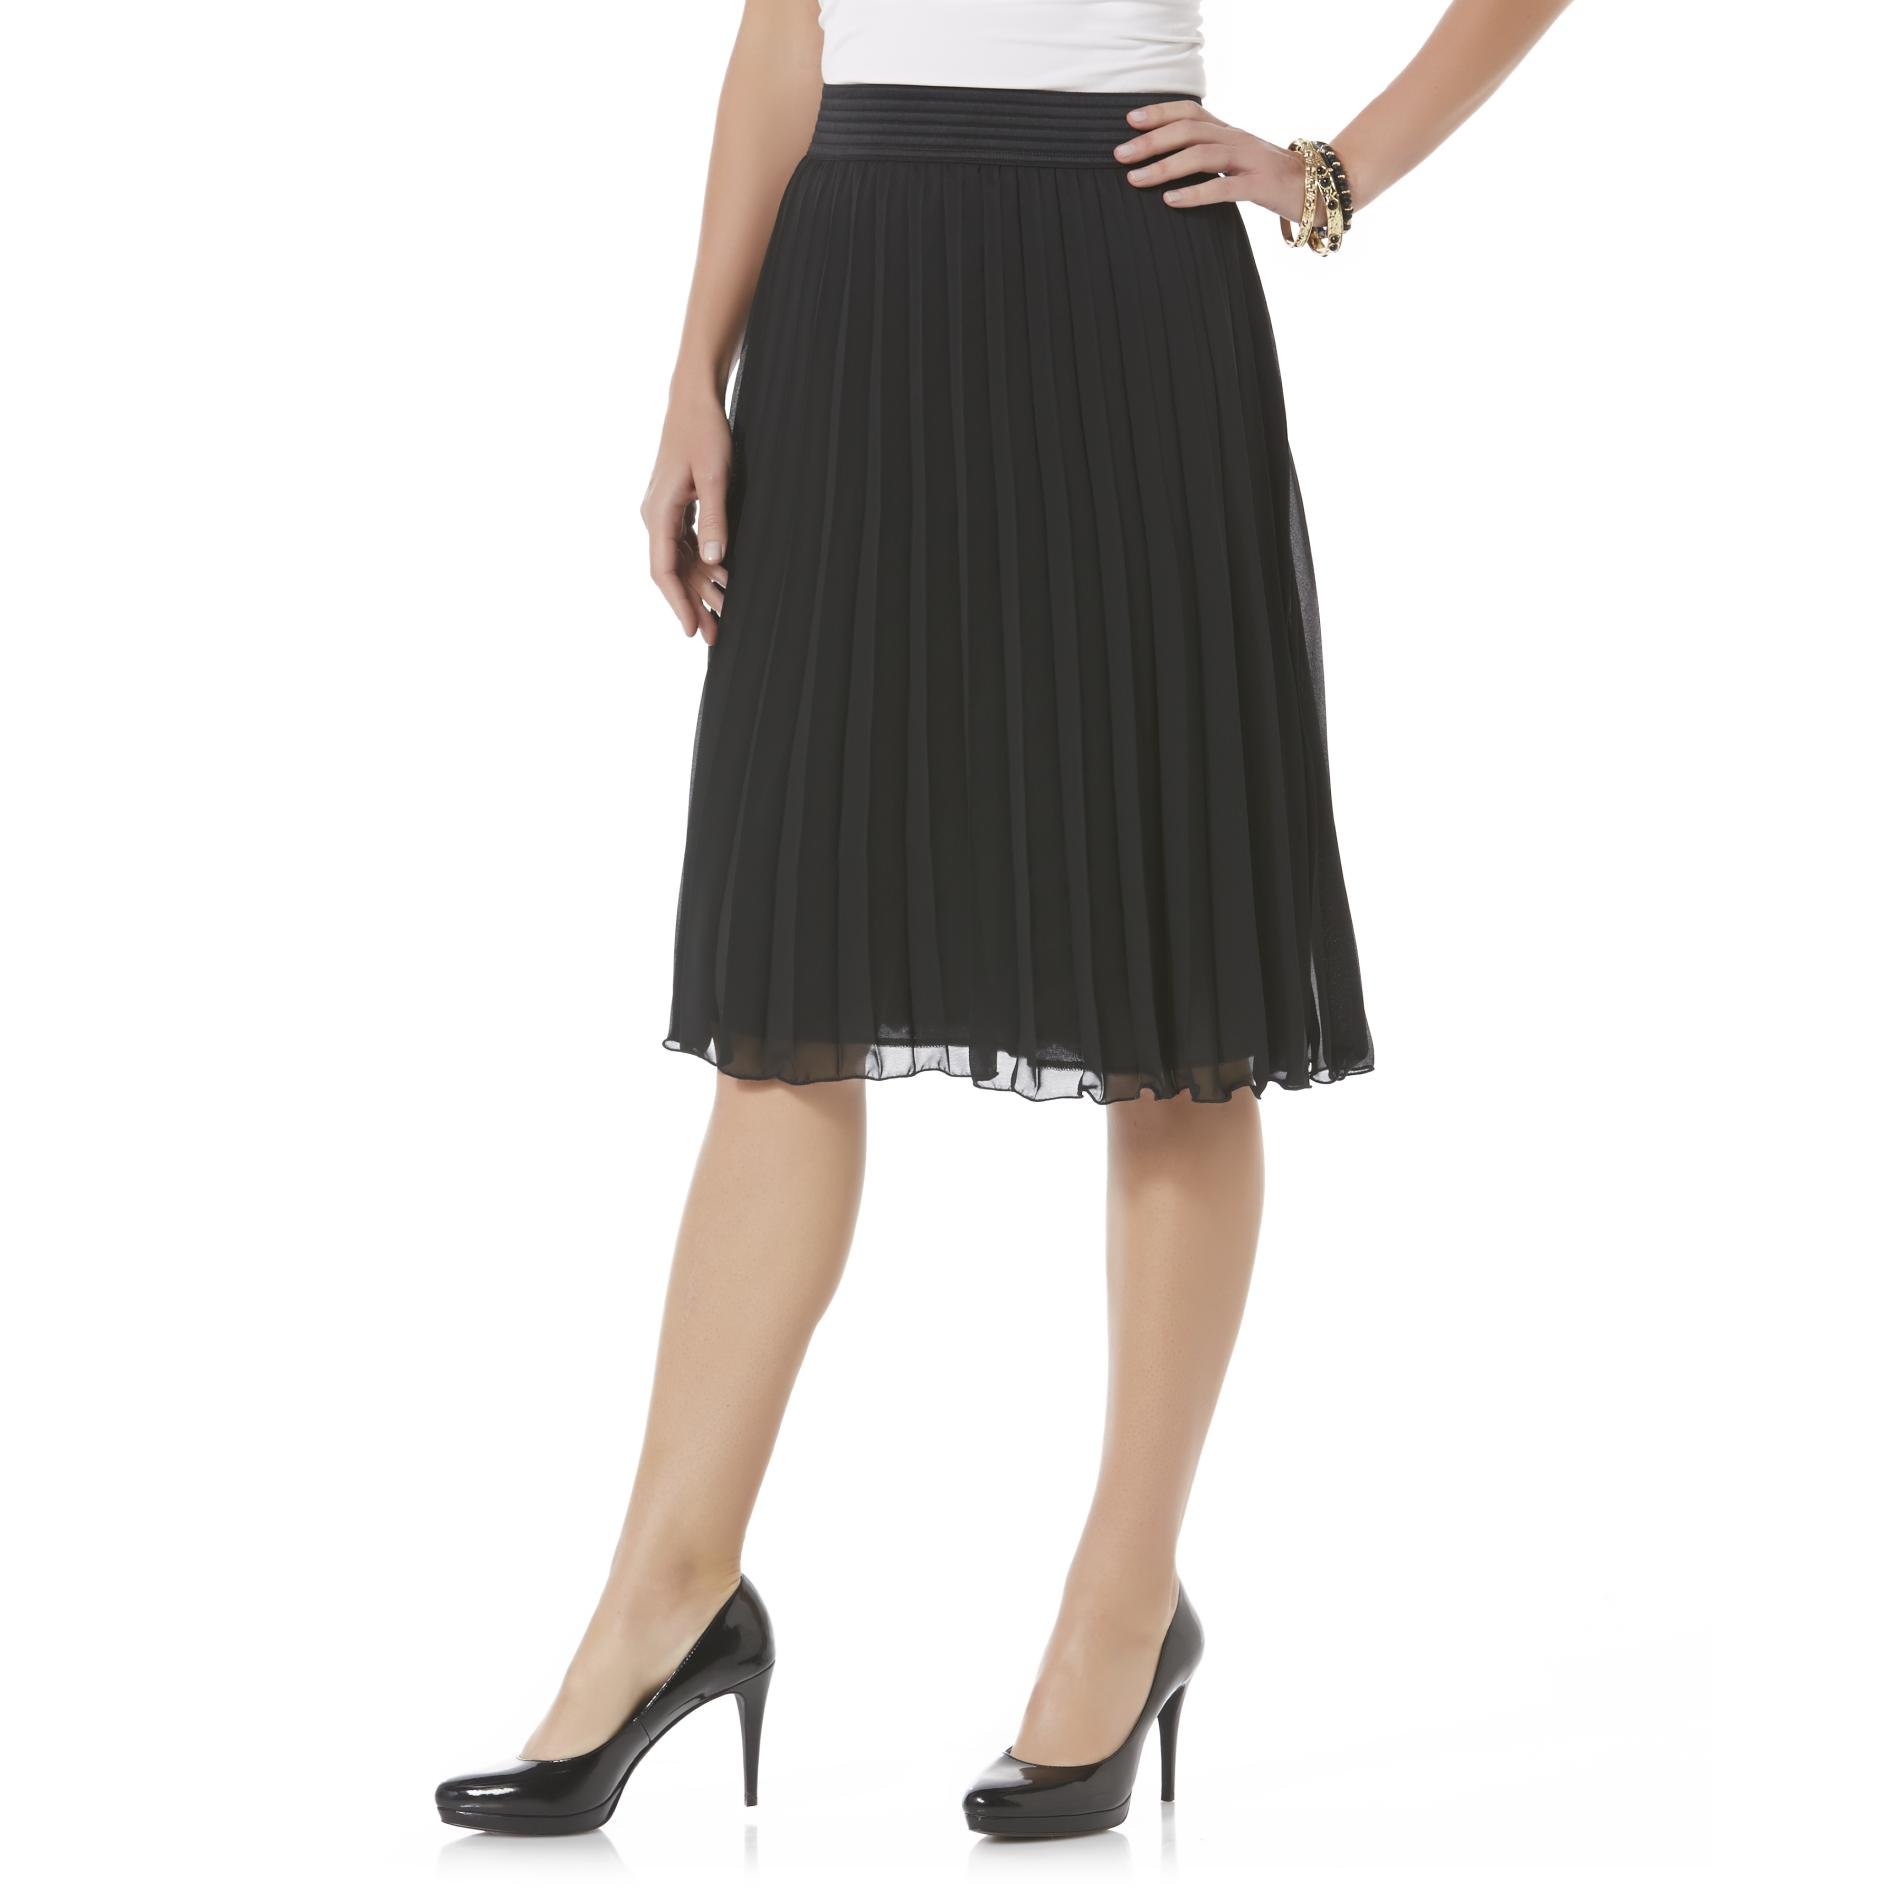 Jaclyn Smith Women's Pleated Skirt PartNumber: 027VA82194512P MfgPartNumber: WF5JS52040MI